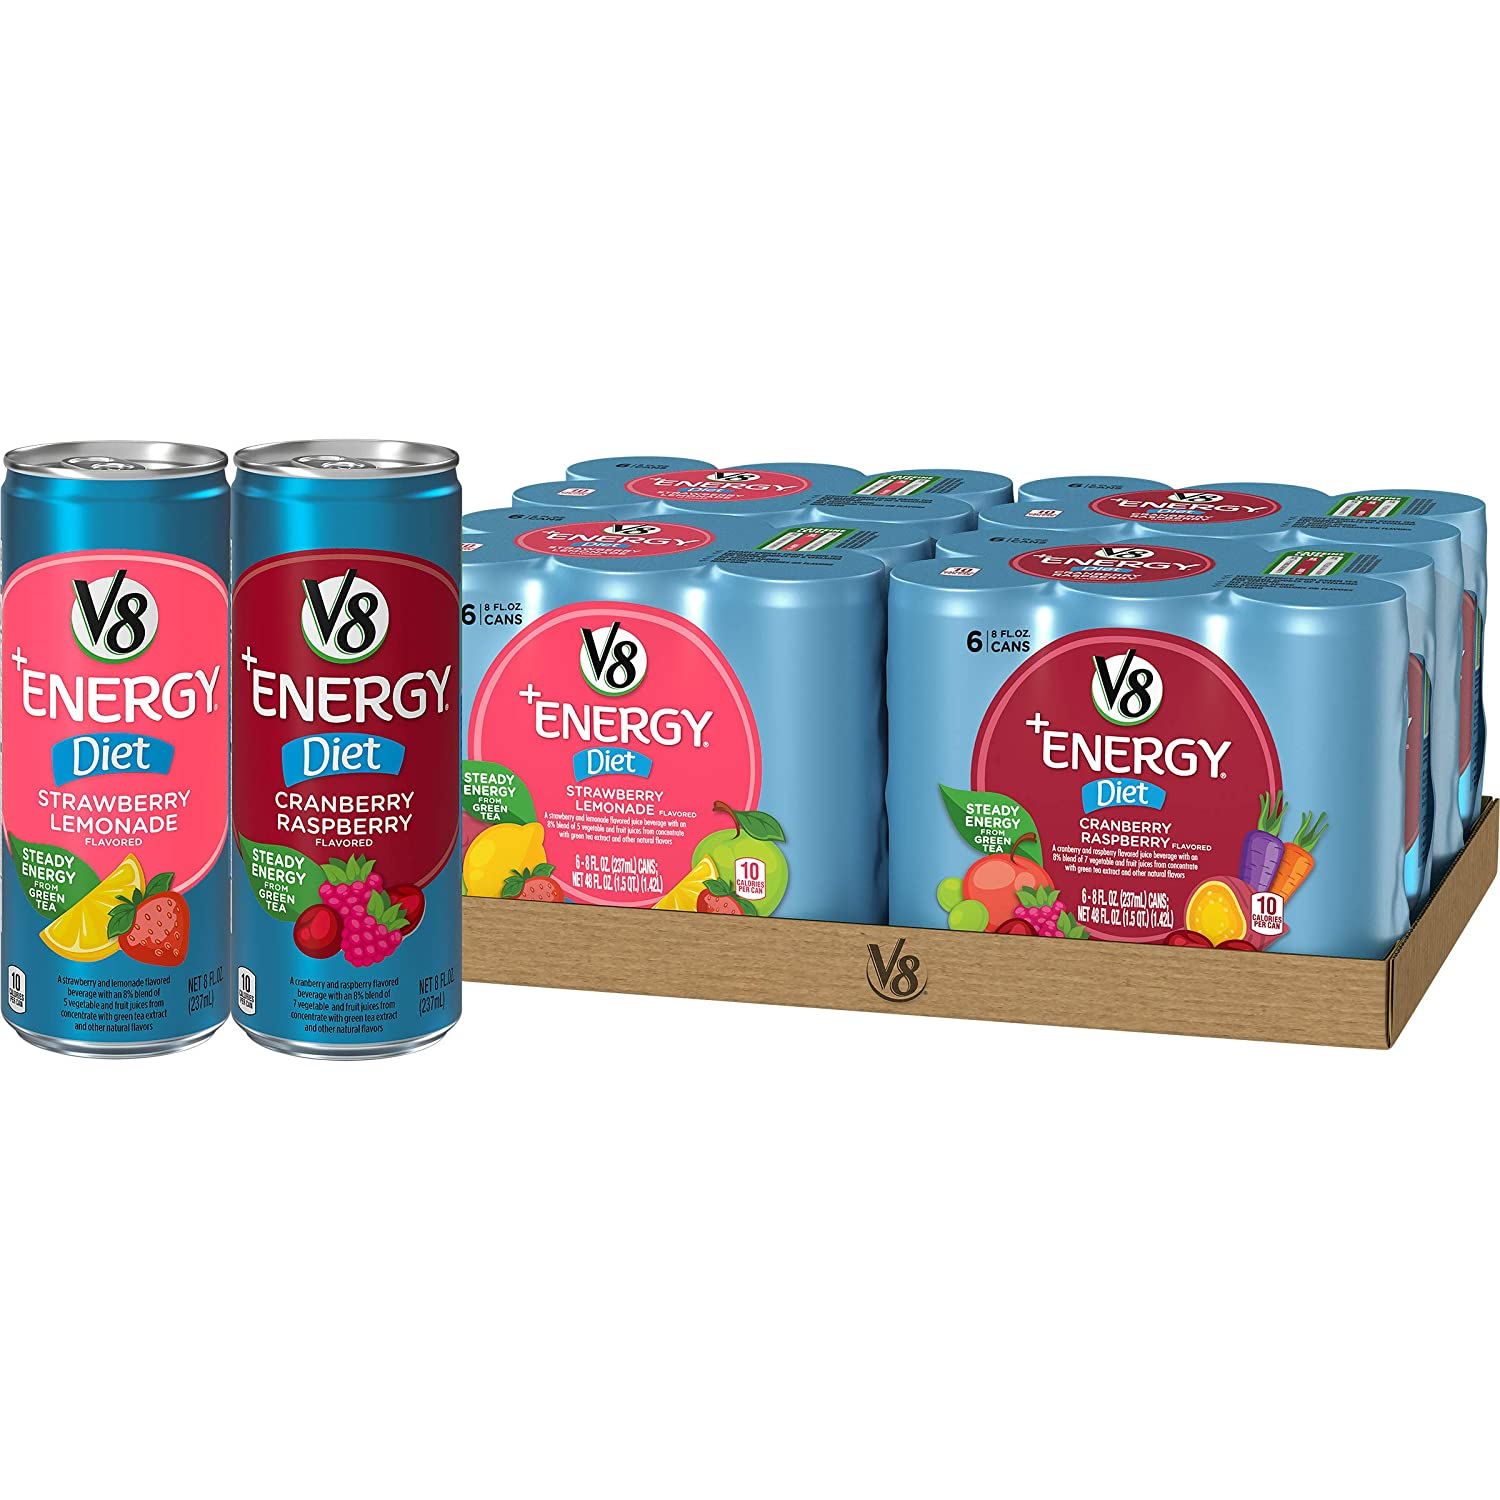 V8 +Energy Diet Variety Pack, Healthy Energy Drink, Diet Strawberry Lemonade and Diet Cranberry Raspberry, 8 Ounce Can (4 Packs of 6, Total of 24)